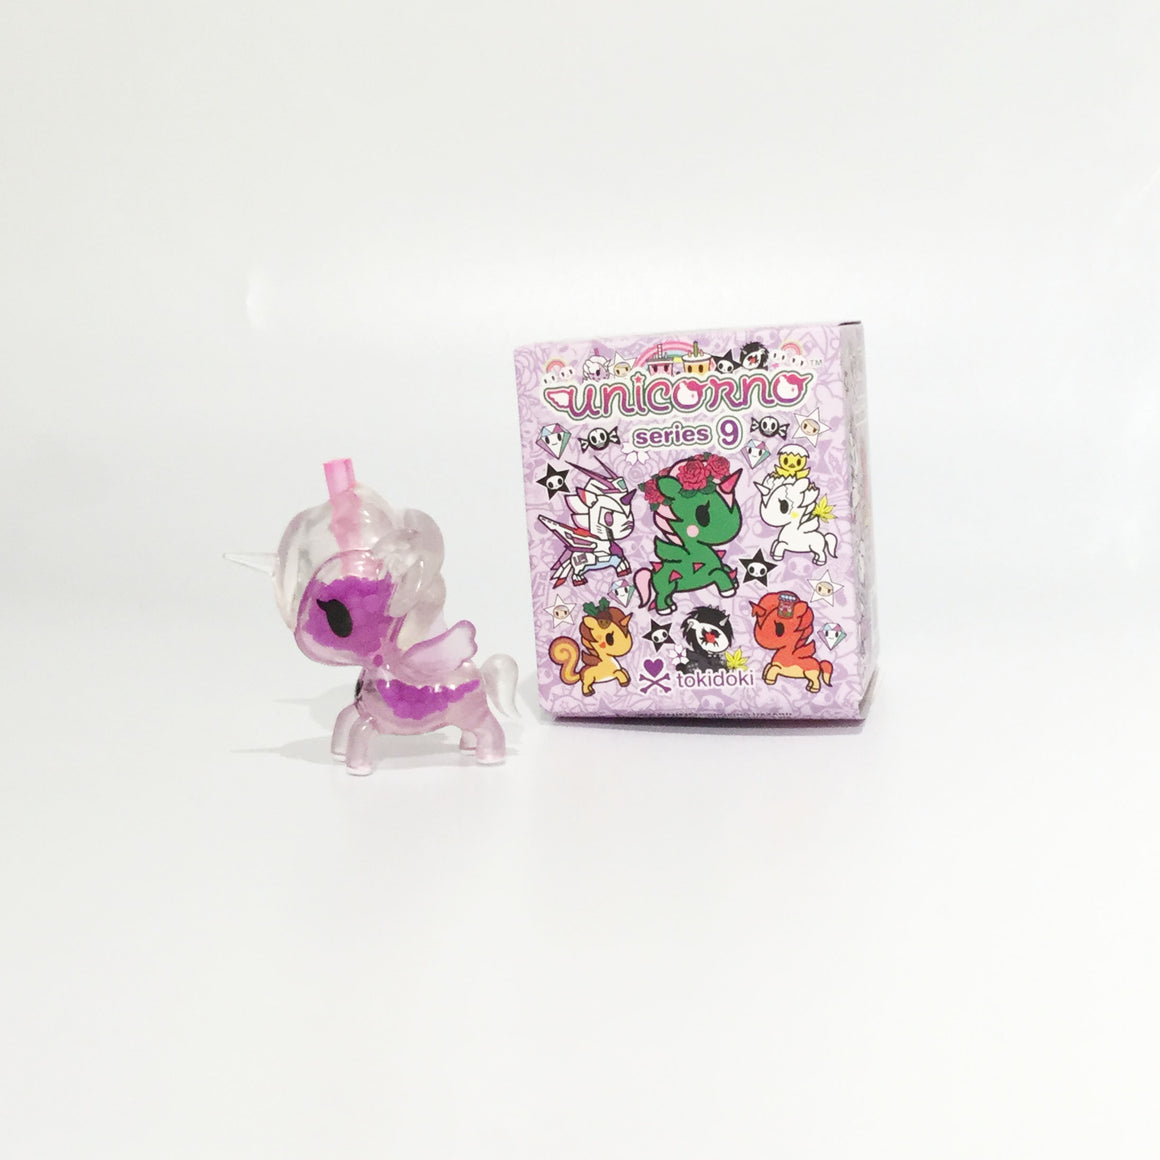 Unicorno Series 9 by Tokidoki - Yum Yum (Chaser)